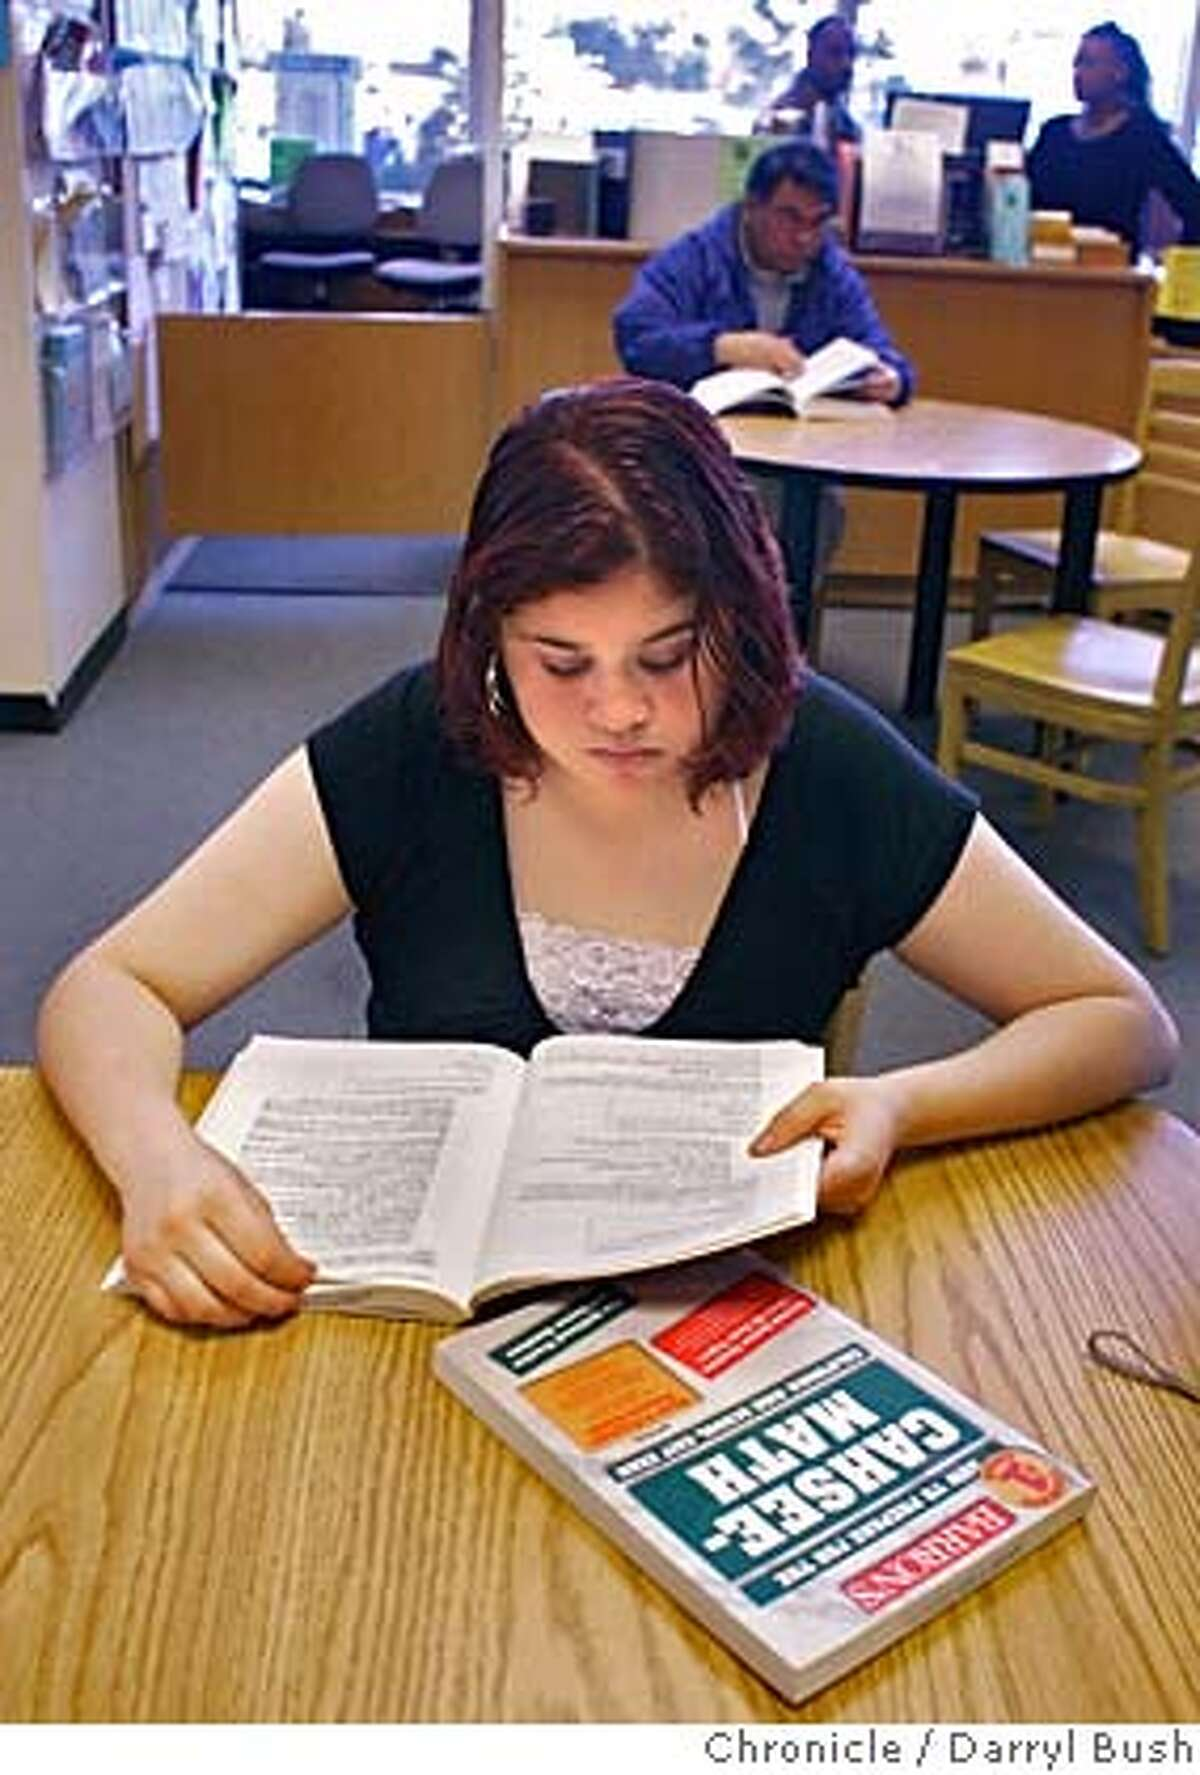 exitexamkid_0079_db.JPG Iris Padilla, 16, studies for the high school exit exam at the Richmond public library using books for English language arts and math. Event on 2/21/06 in Richmond. Darryl Bush / The Chronicle MANDATORY CREDIT FOR PHOTOG AND SF CHRONICLE/ -MAGS OUT